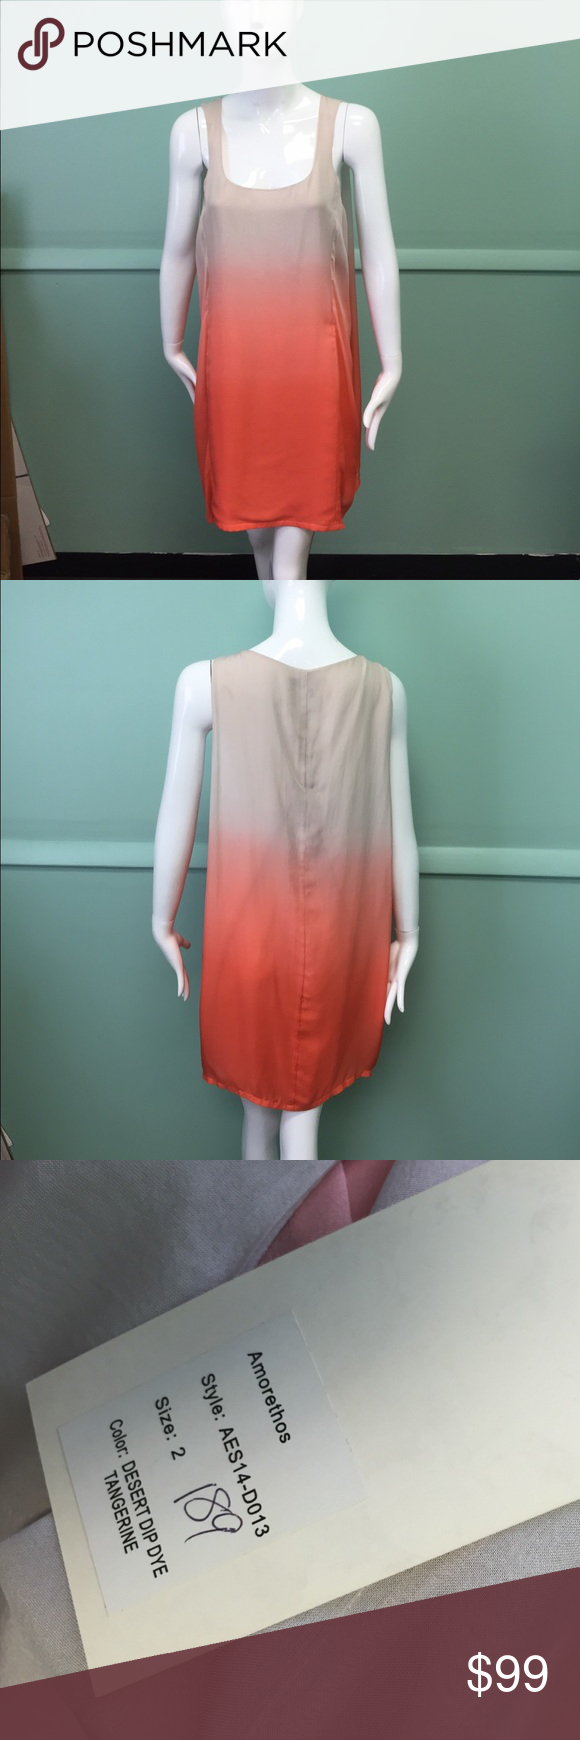 Amorethos desert dip dye silk dress New with tags. No PayPal or trades. Reasonable offers via offer option only. Location: Boca Raton, Fl Amorethos Dresses